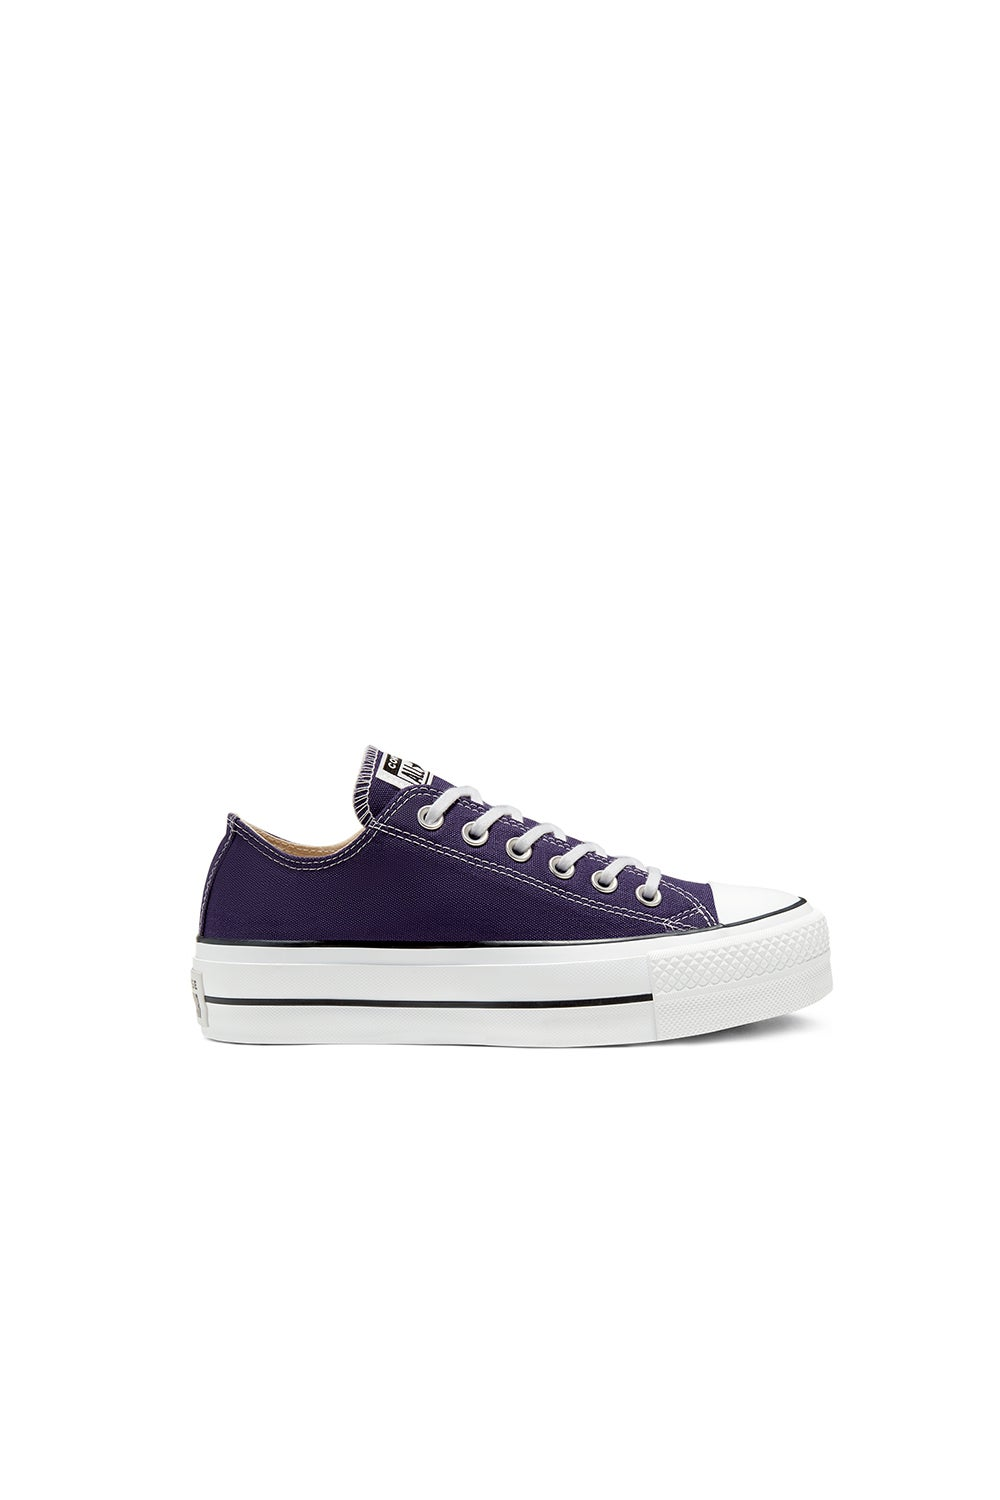 Converse Chuck Taylor All Star Lift Low Japanese Eggplant